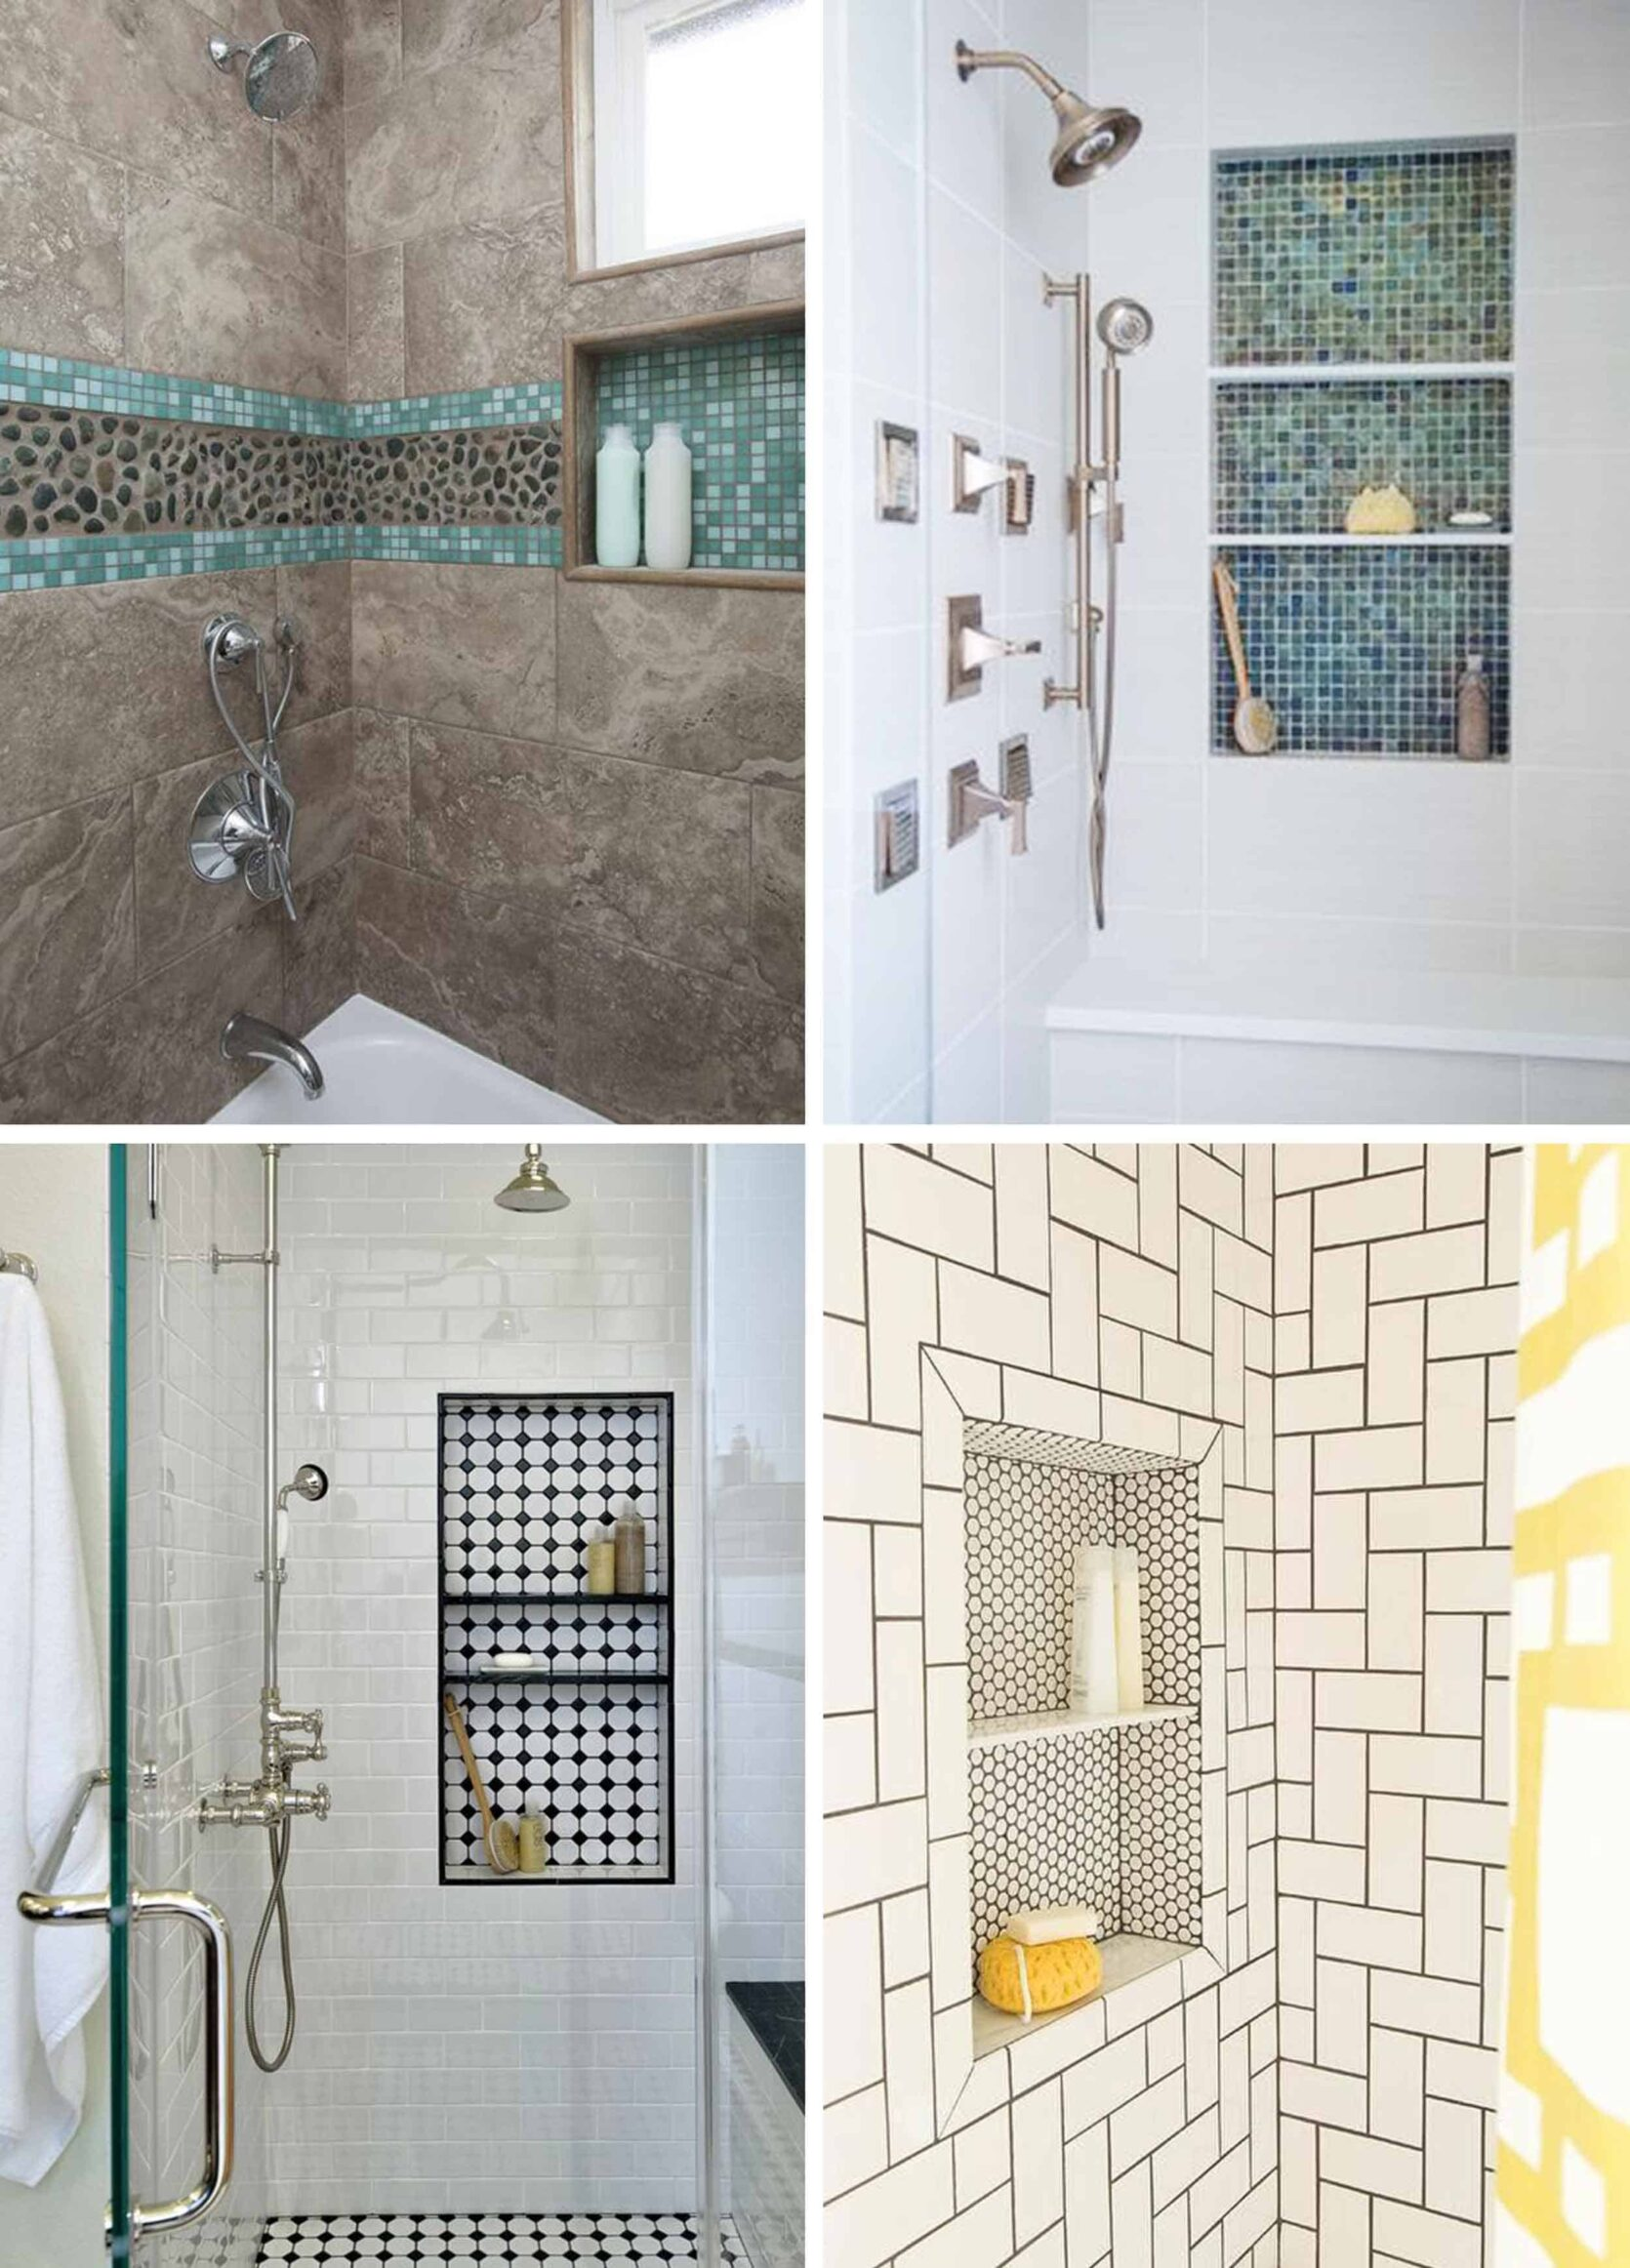 Shower Niche With Contrasting Tile